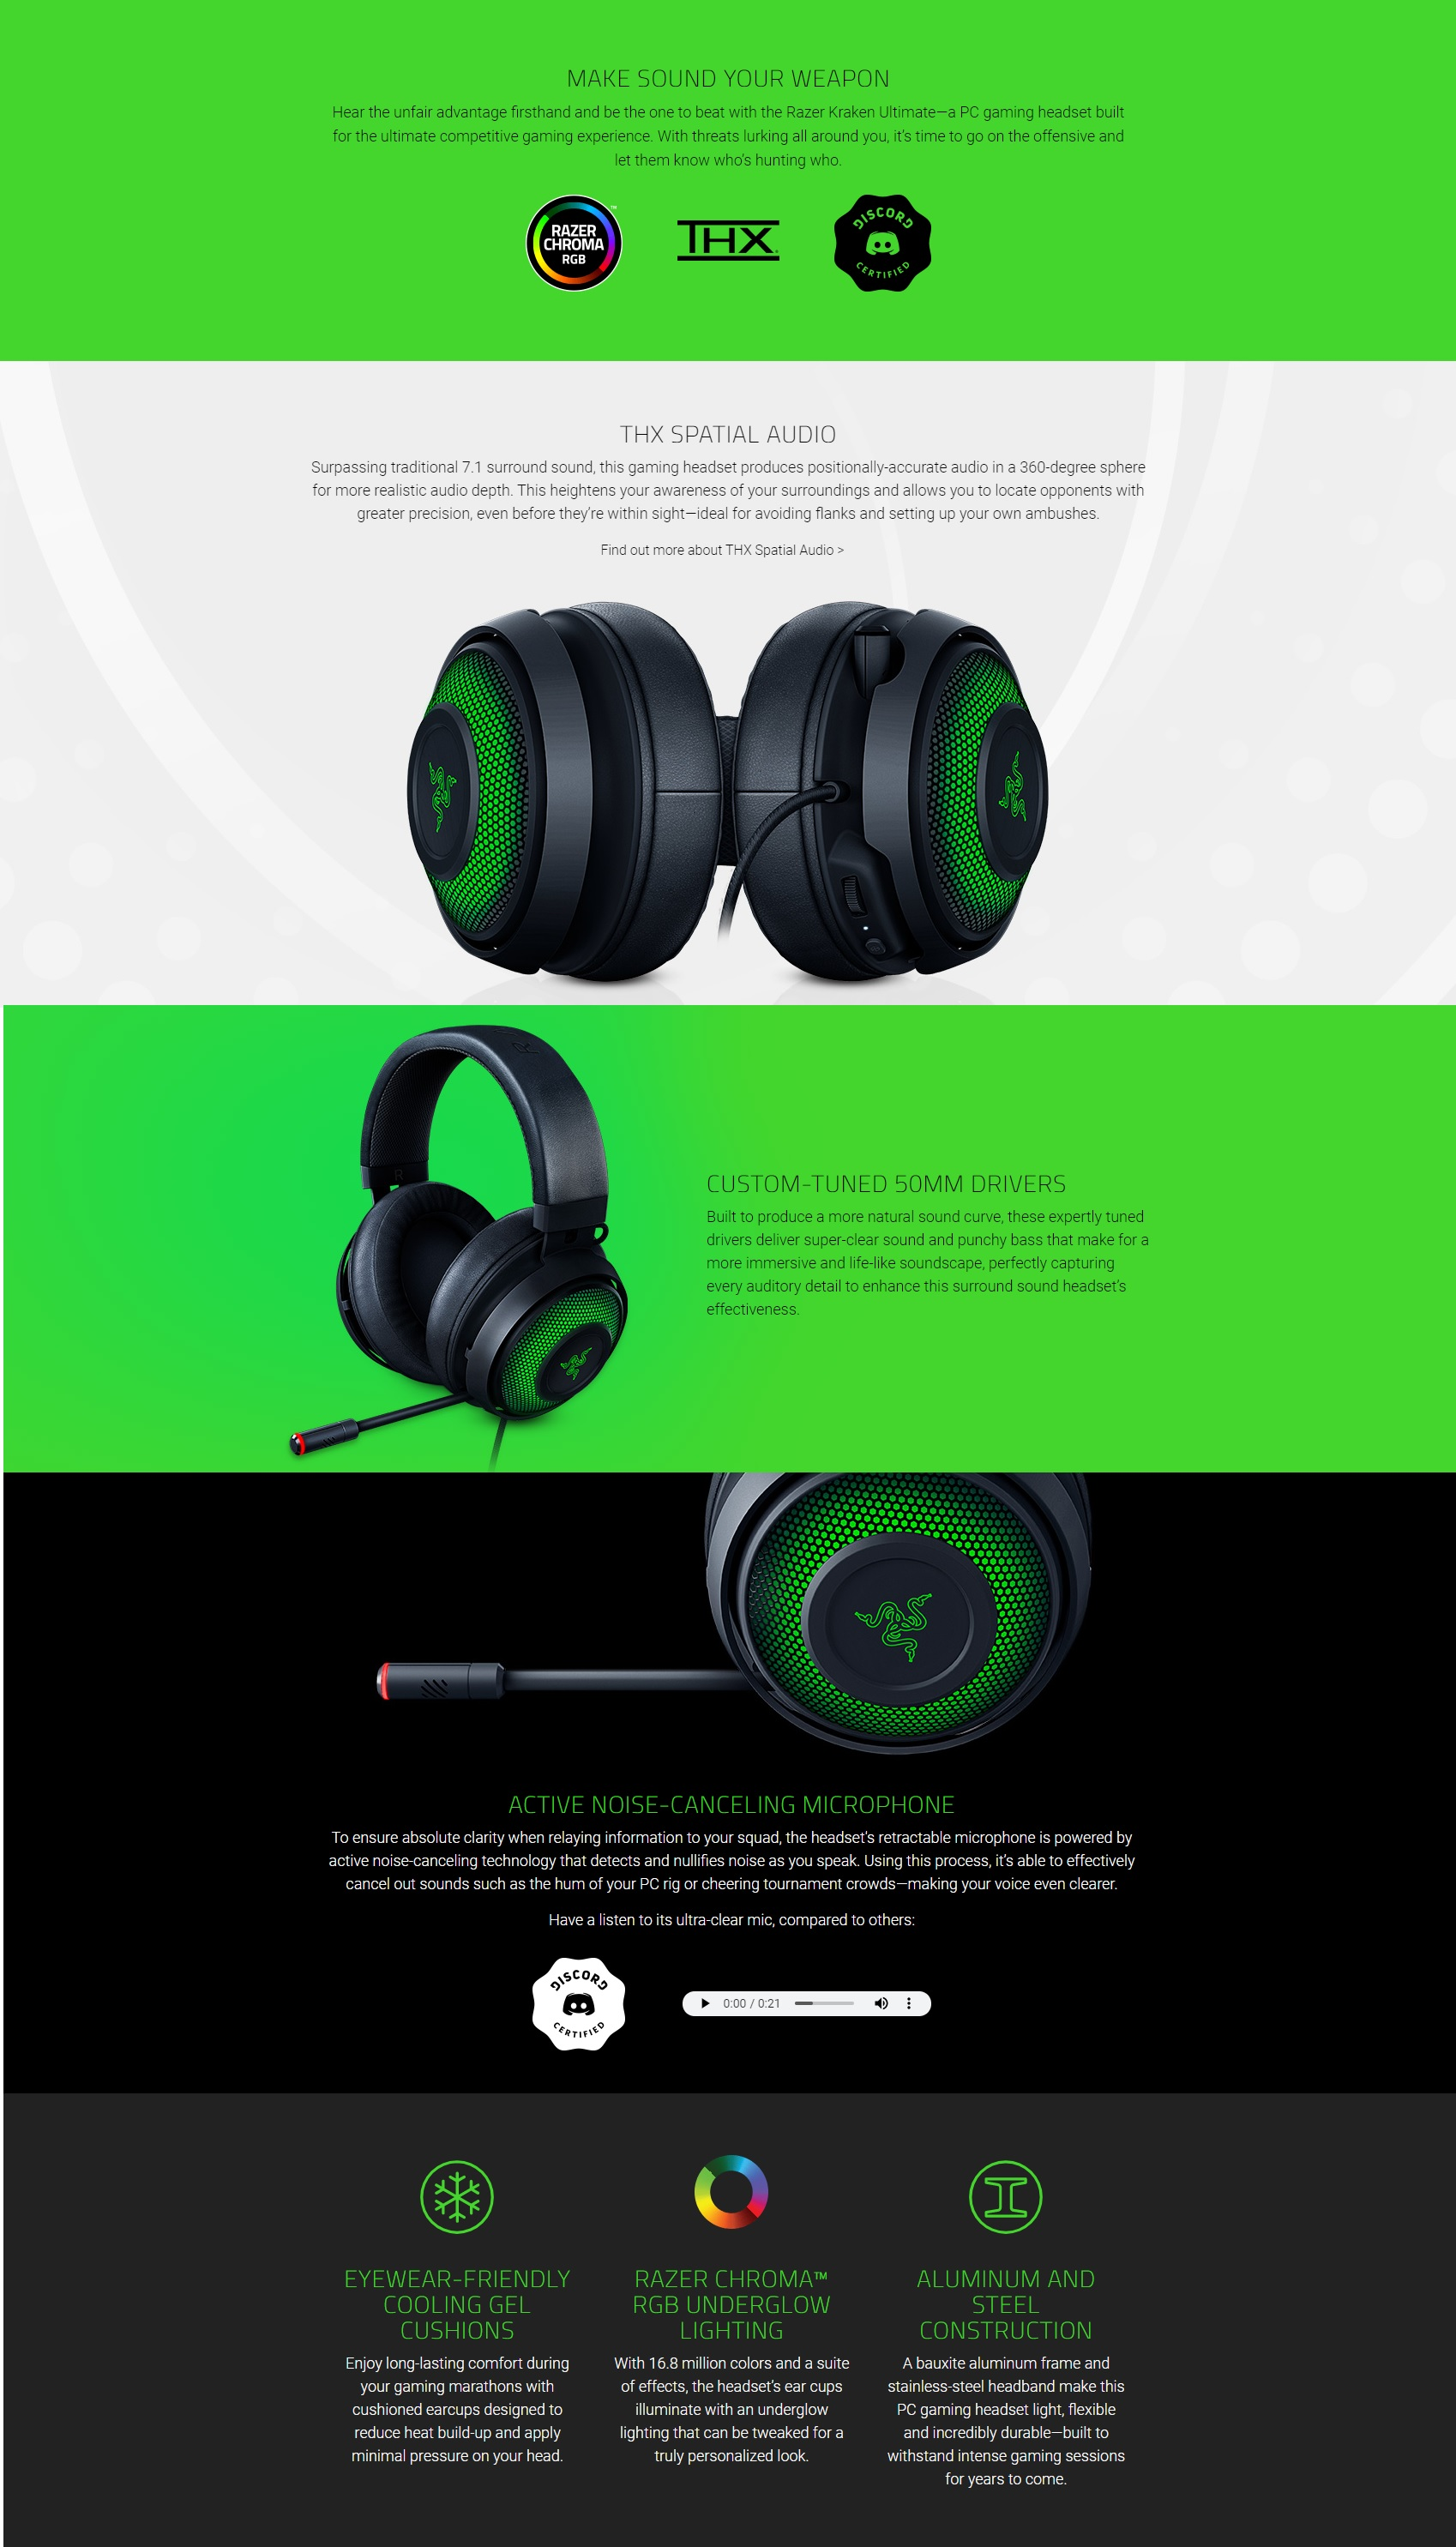 A large marketing image providing additional information about the product Razer Kraken Ultimate - USB Surround Sound Headset with ANC Microphone - Black - Additional alt info not provided